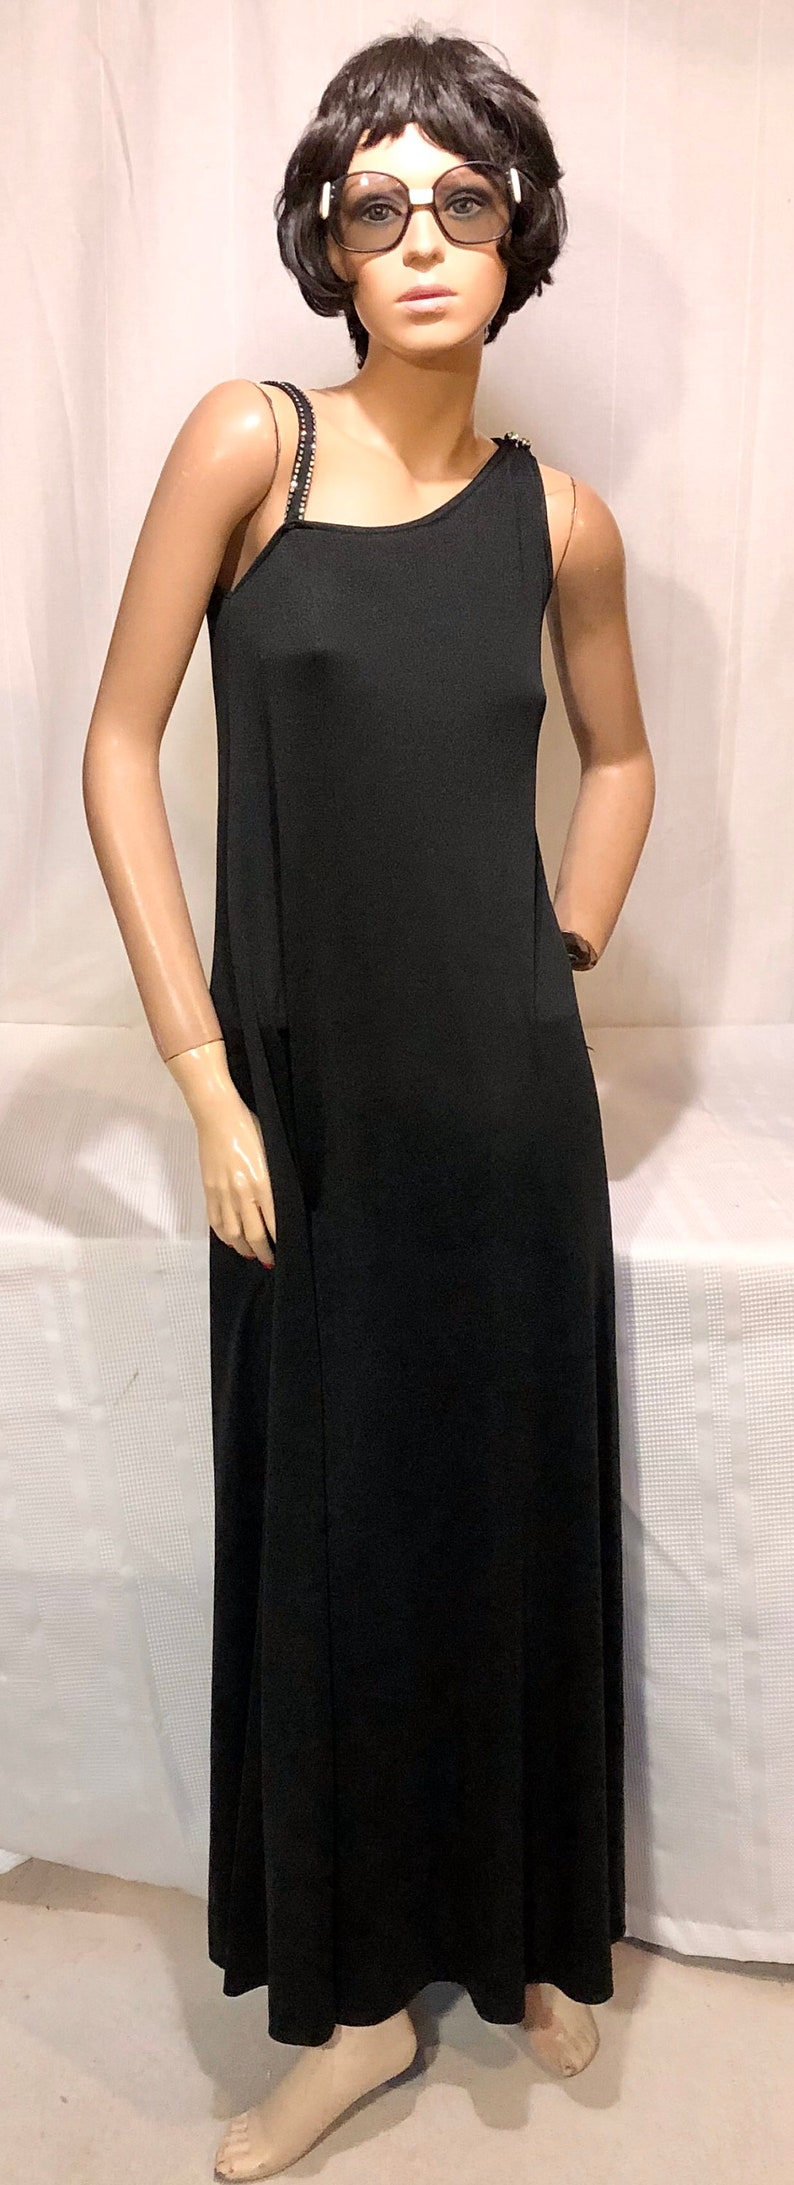 Vtg 70\u2019s Maxi Banlon Dress Gown by PAT RICHARDS Black RHINESTONES on Shoulder Straps-Perfect For Holiday Parties New Year/'s Eve or Disco